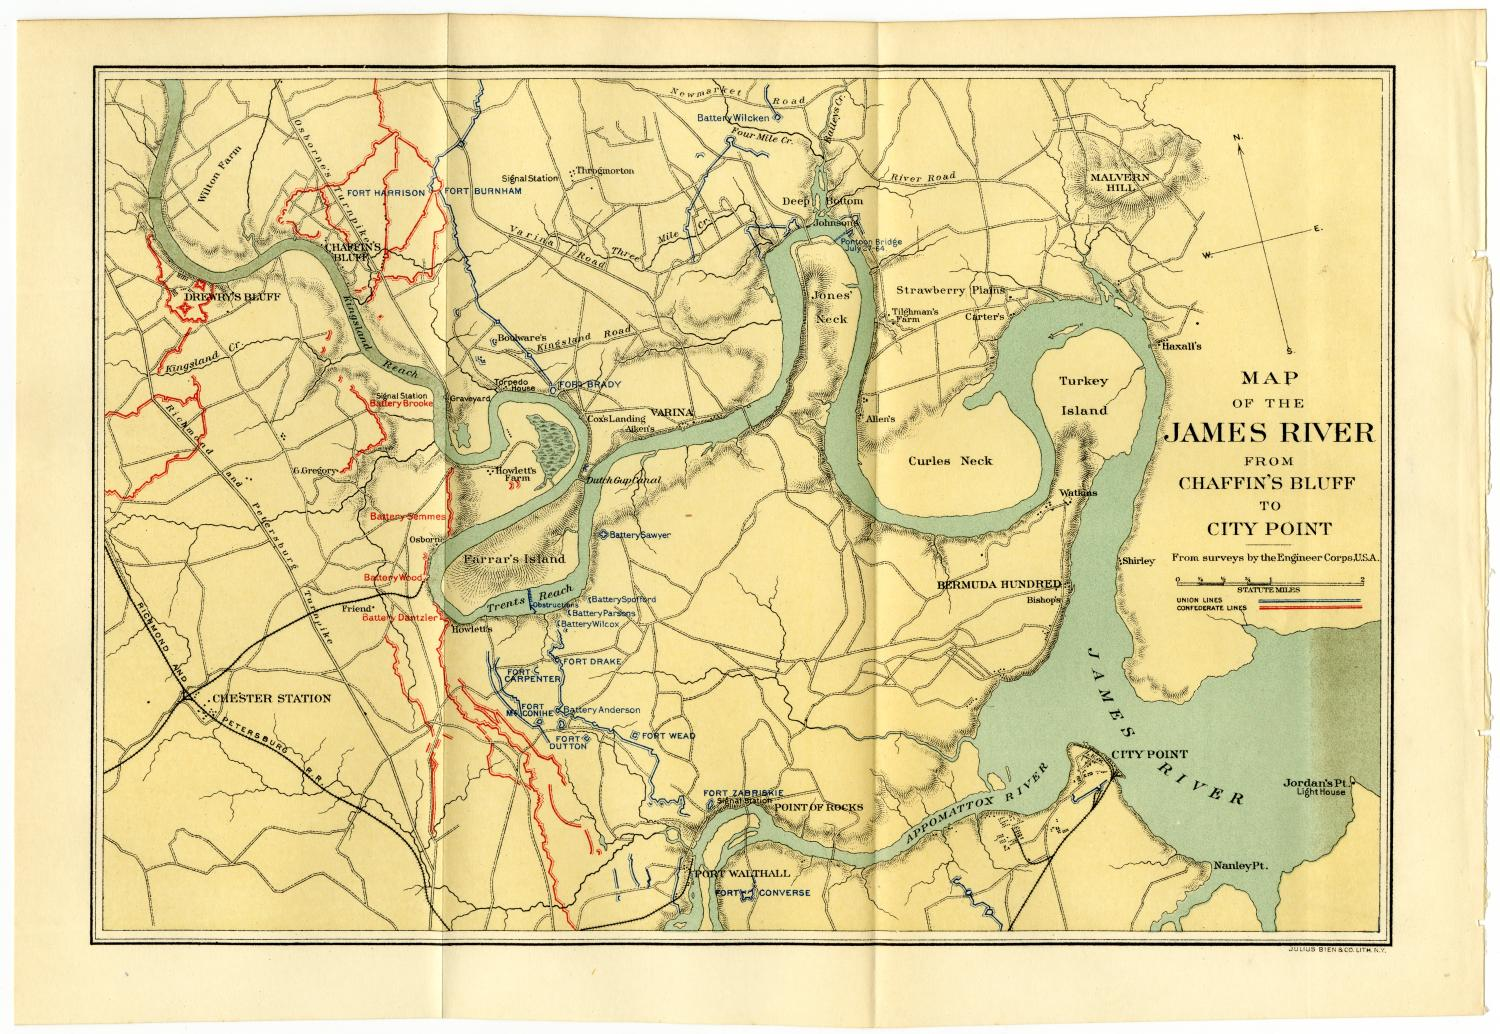 Map of the James River from Chaffin's Bluff to City Point                                                                                                      [Sequence #]: 1 of 2